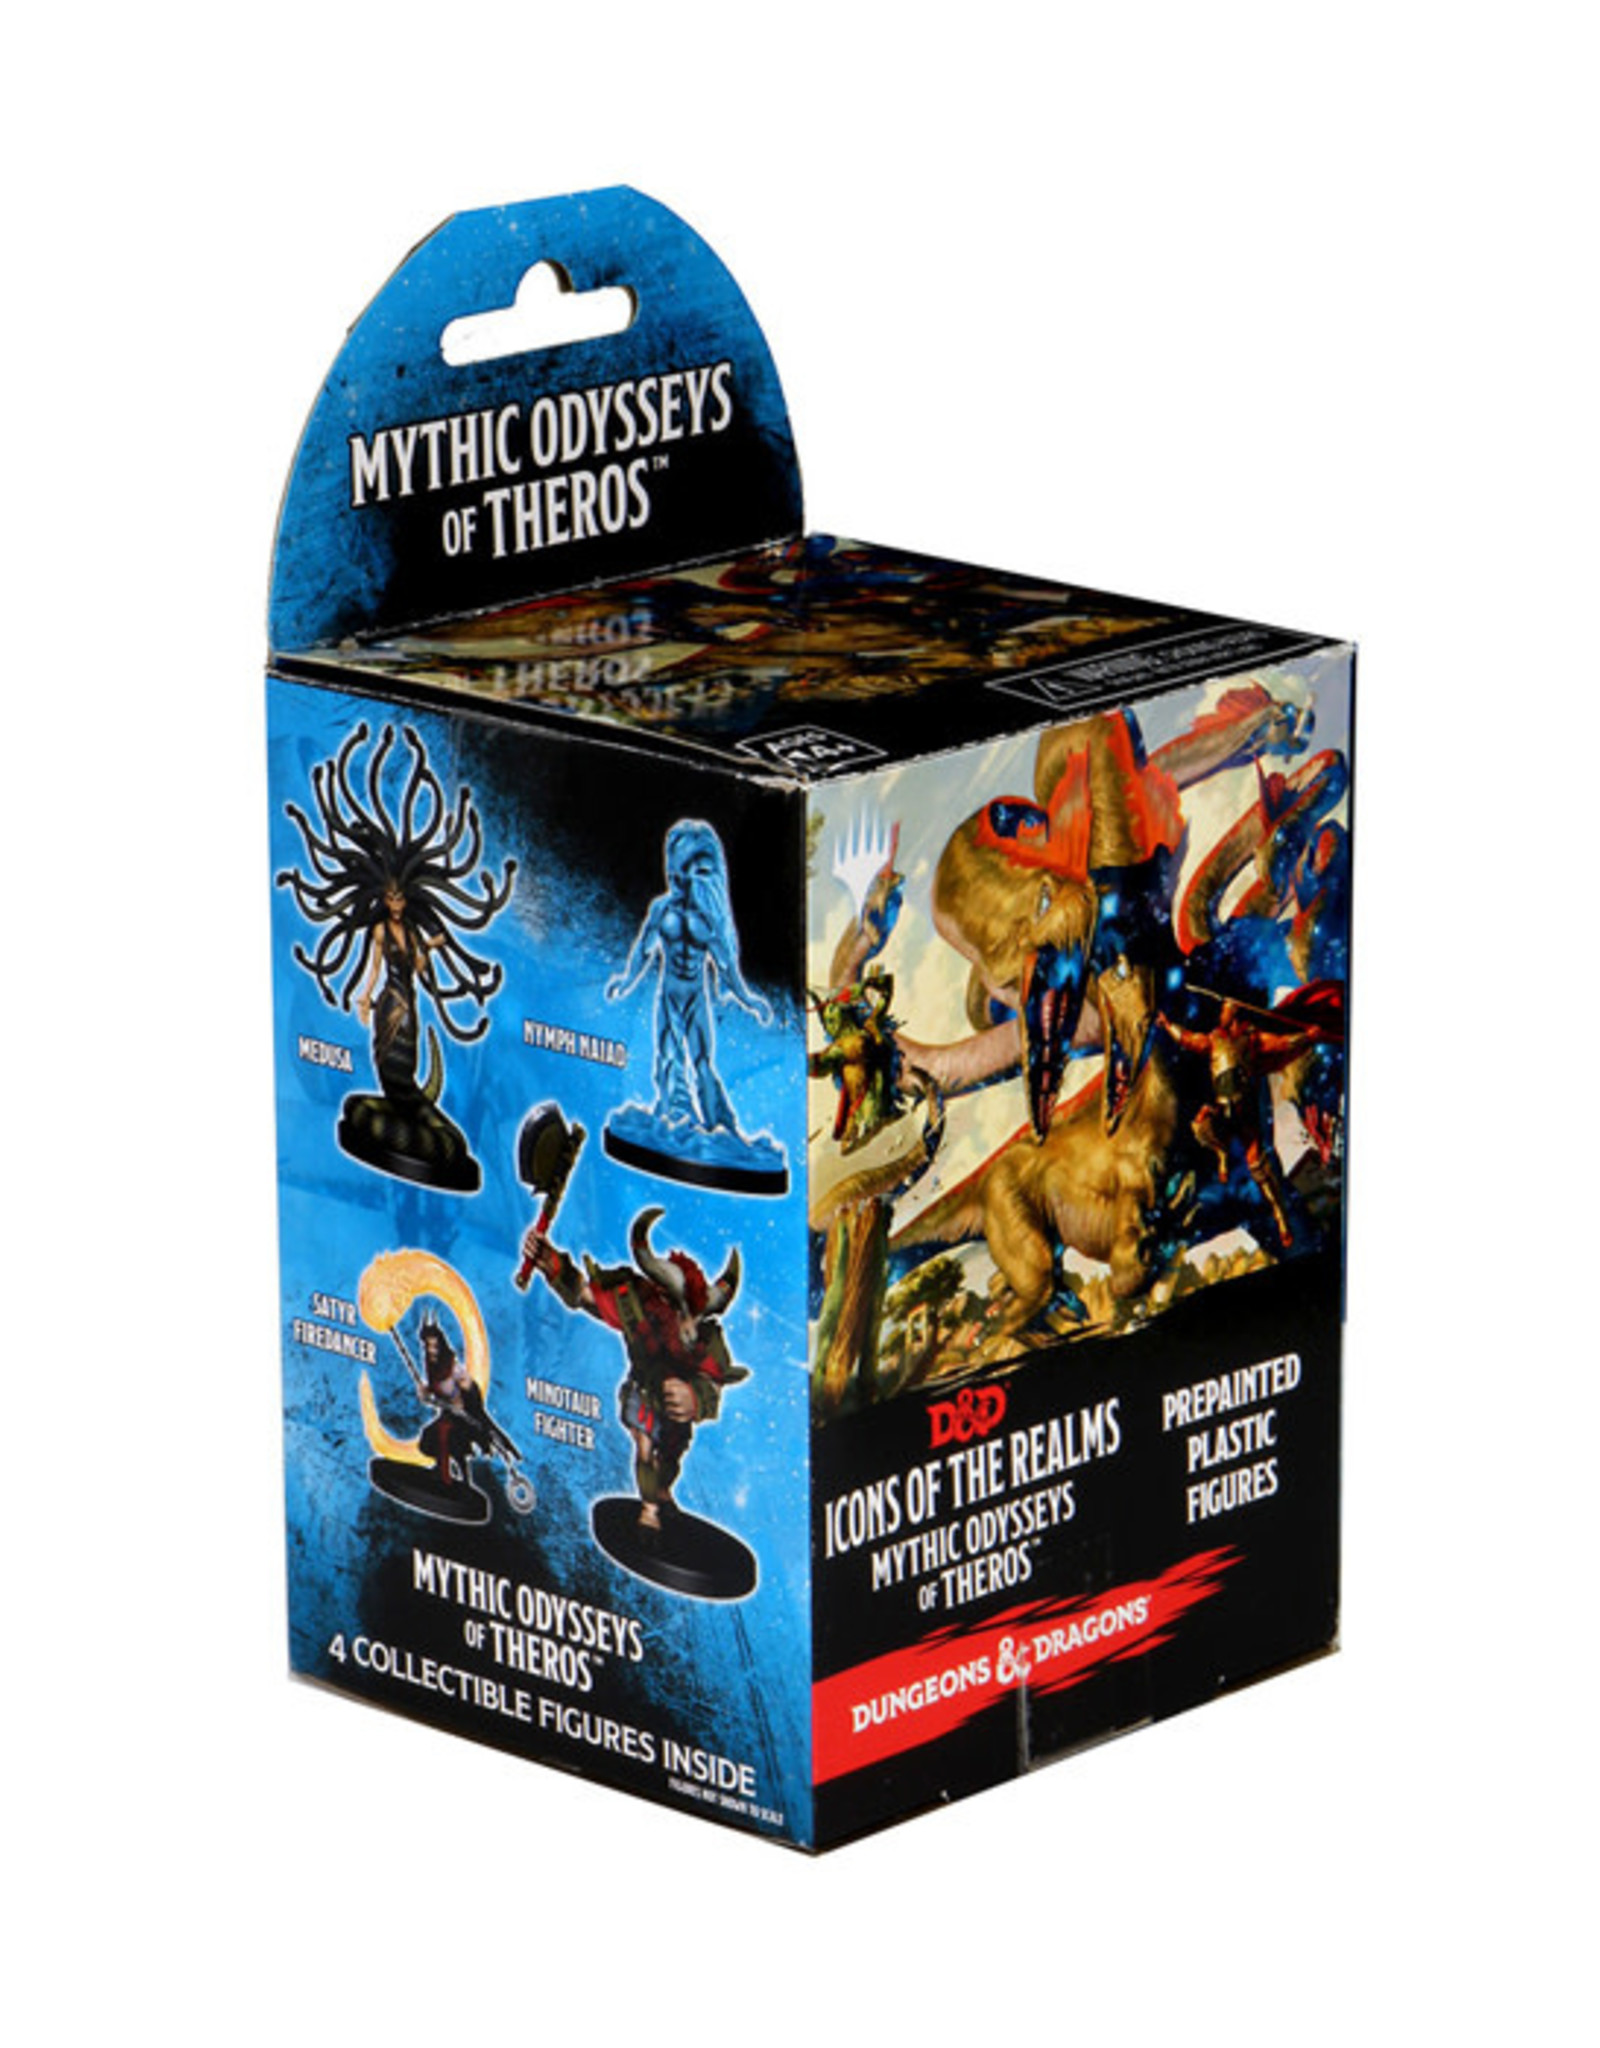 Dungeons & Dragons Dungeons & Dragons: Icons of the Realms - Mythic Odysseys of Theros - Booster Pack